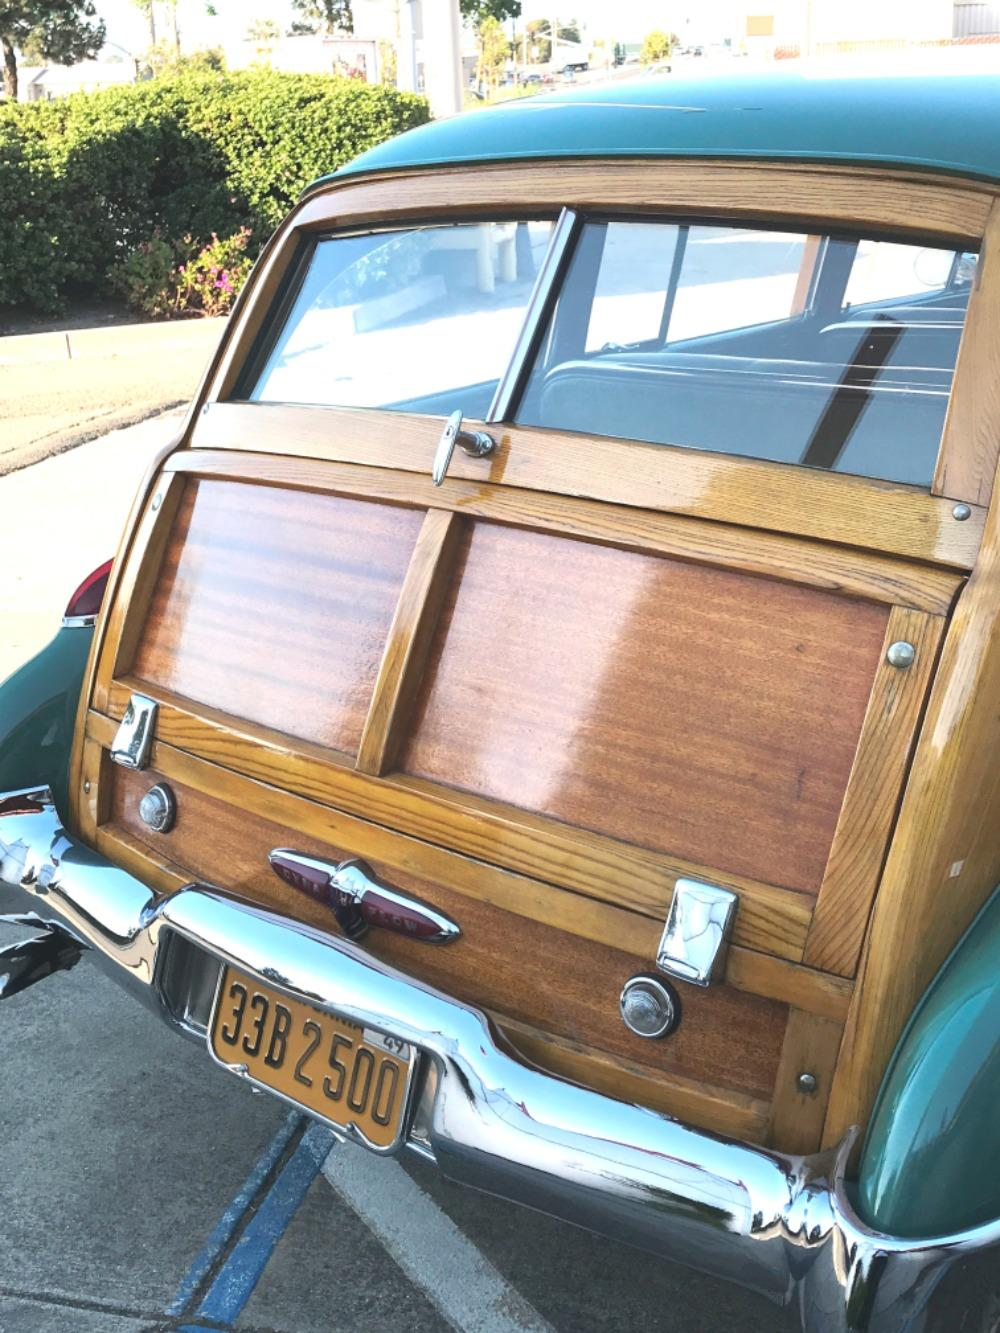 1949 Buick Series 50 -RARE WOODY WAGON- ONLY 653 BUILT-Super Estate Wagon Stock # 849CAMK for sale near Mundelein, IL | IL Buick Dealer #51